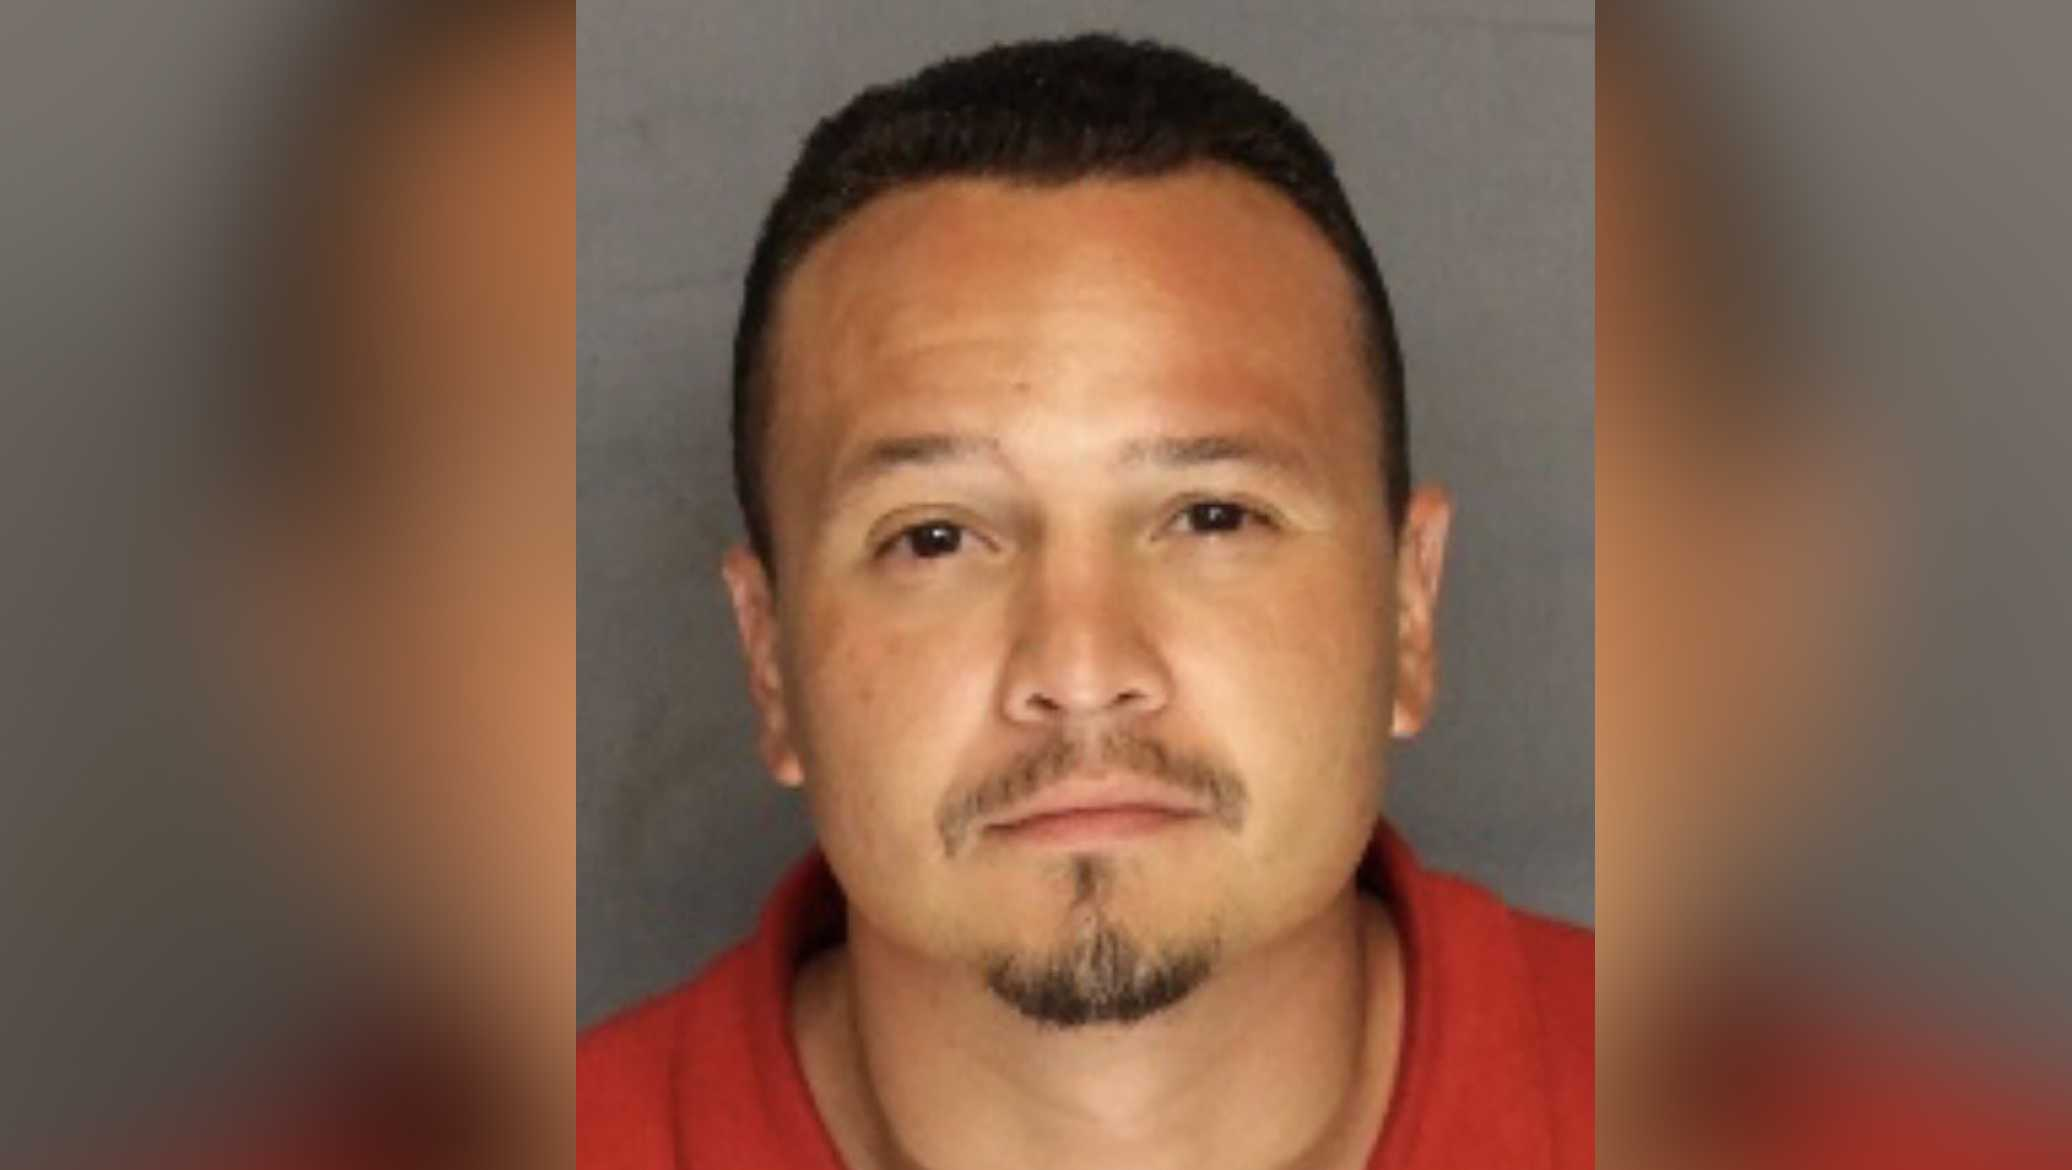 Michael Flores is wanted in connection to a homicide that happened Dec. 30, 2016. Story on Dec. 31, 2016